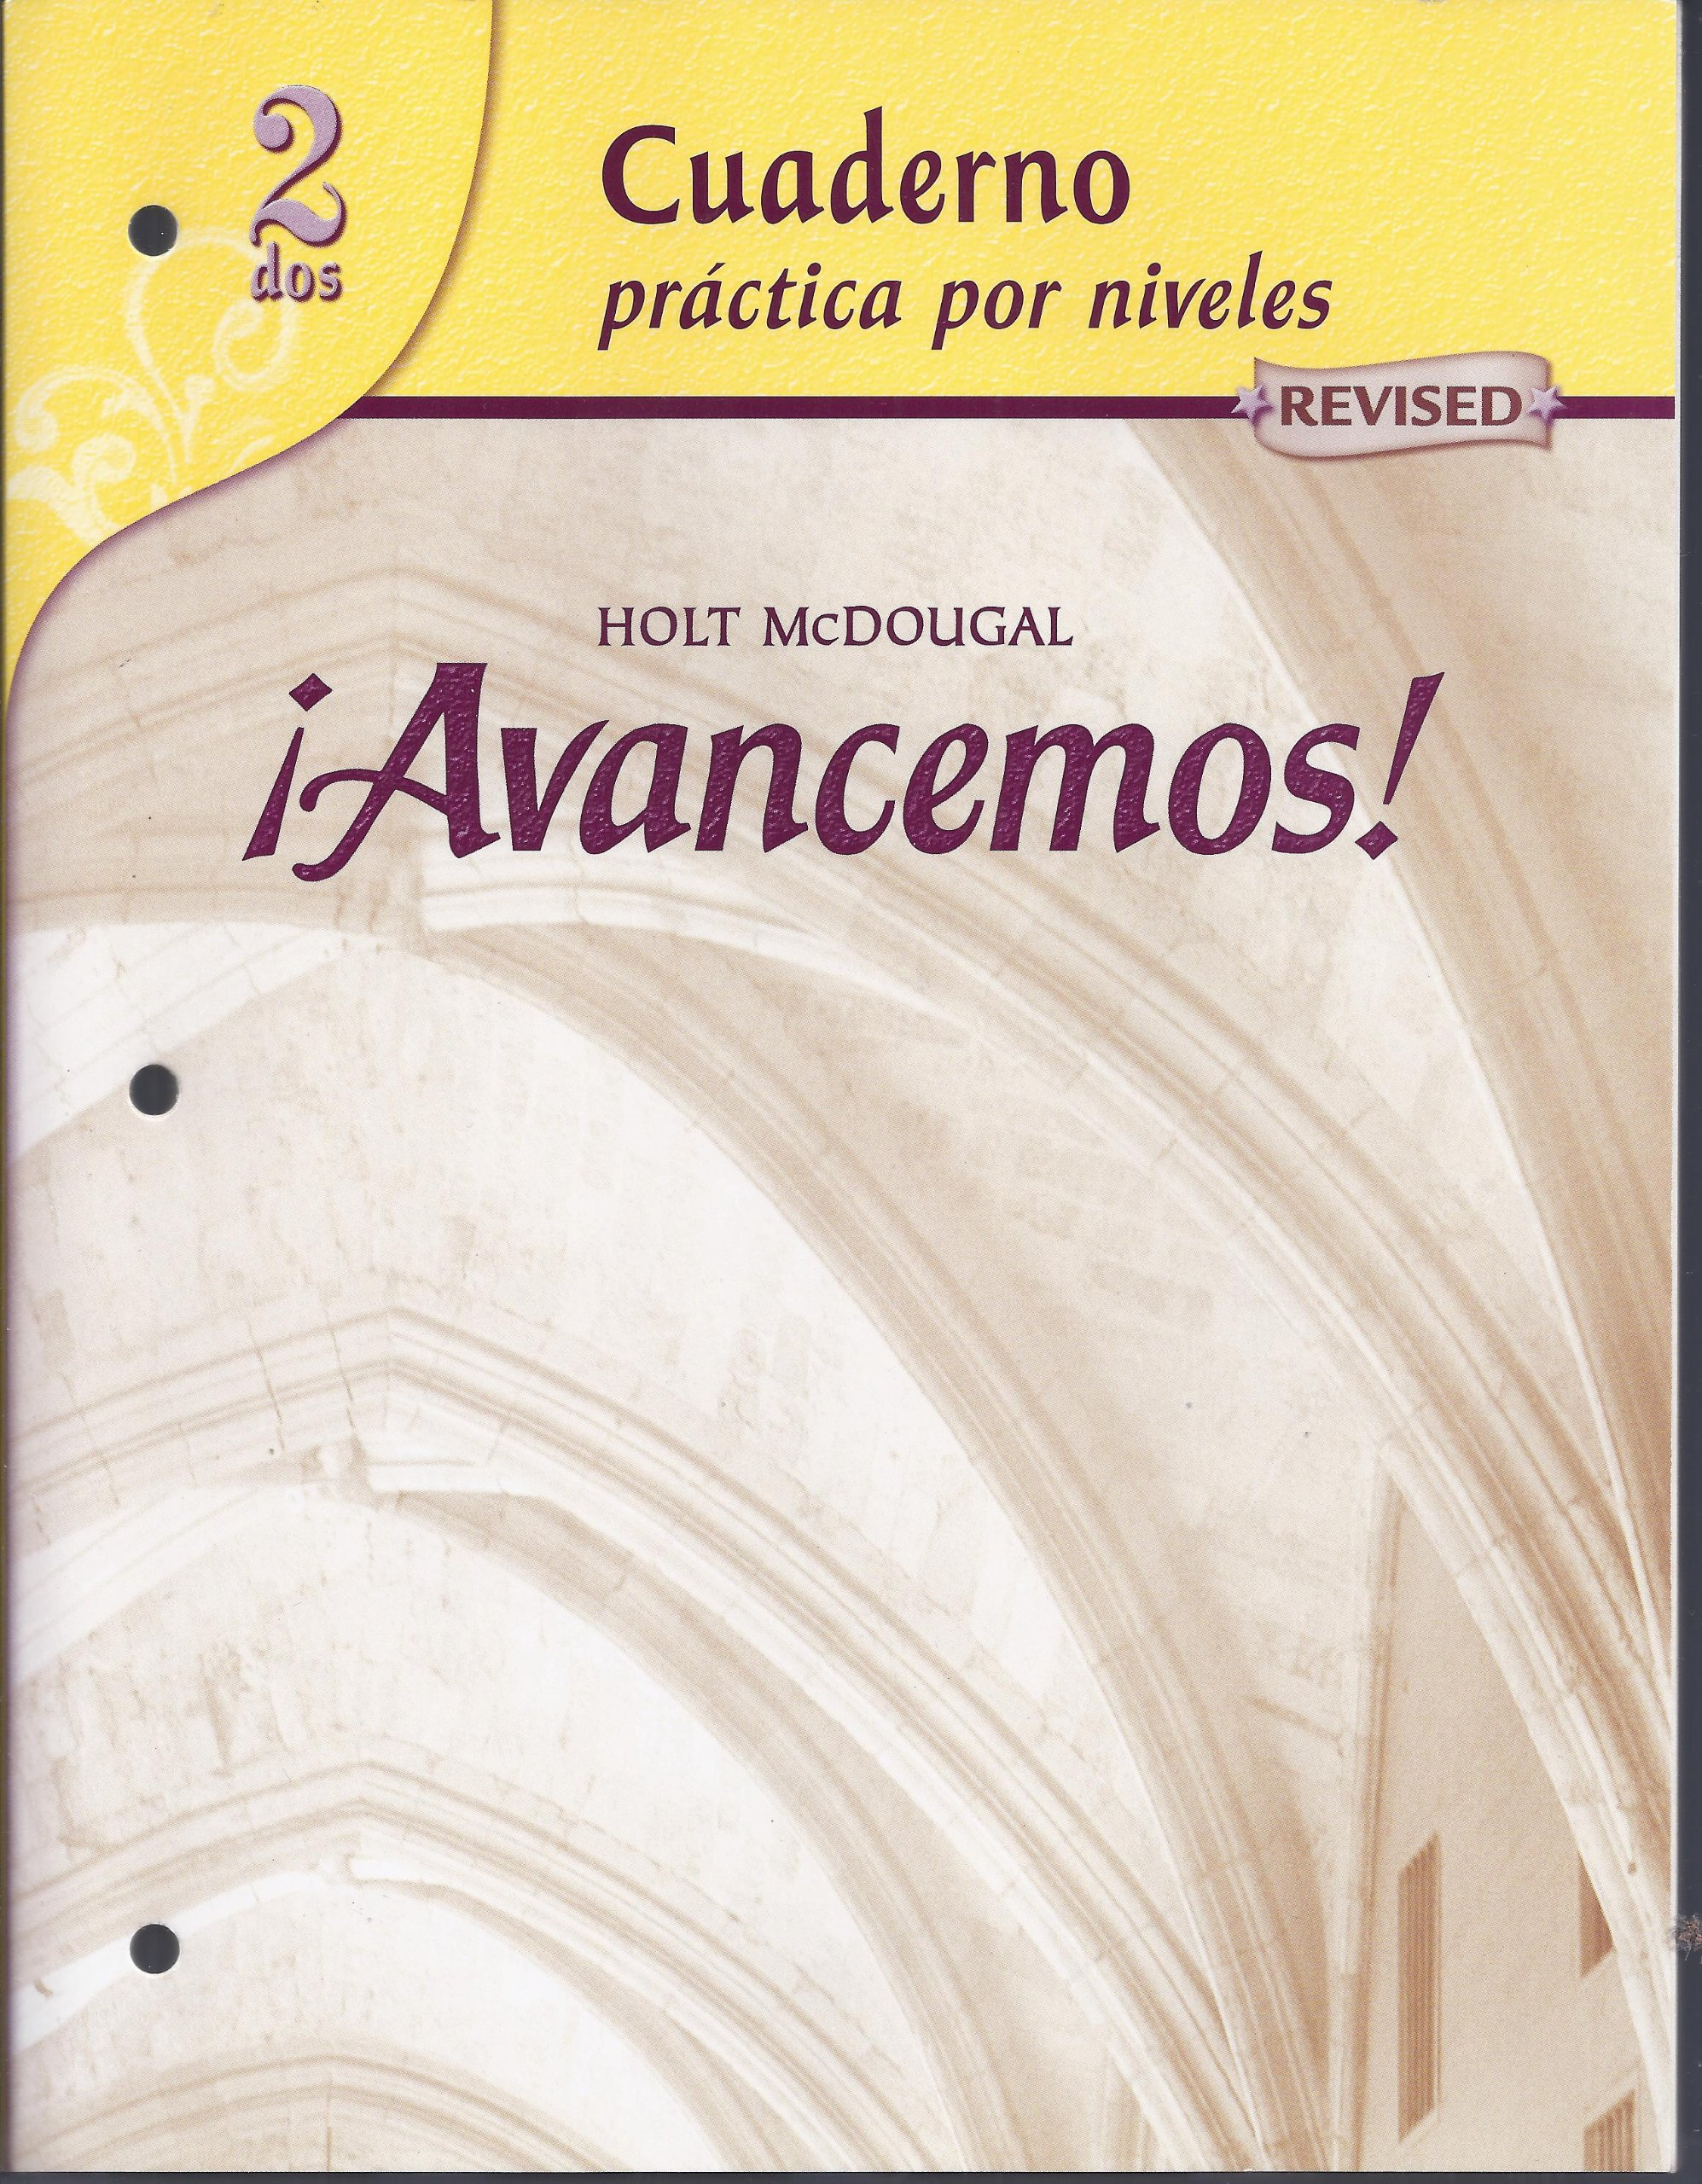 Avancemos cuaderno practica por niveles 2 revised spanish edition avancemos cuaderno practica por niveles 2 revised spanish edition mcdougal littel 9780618765942 amazon books fandeluxe